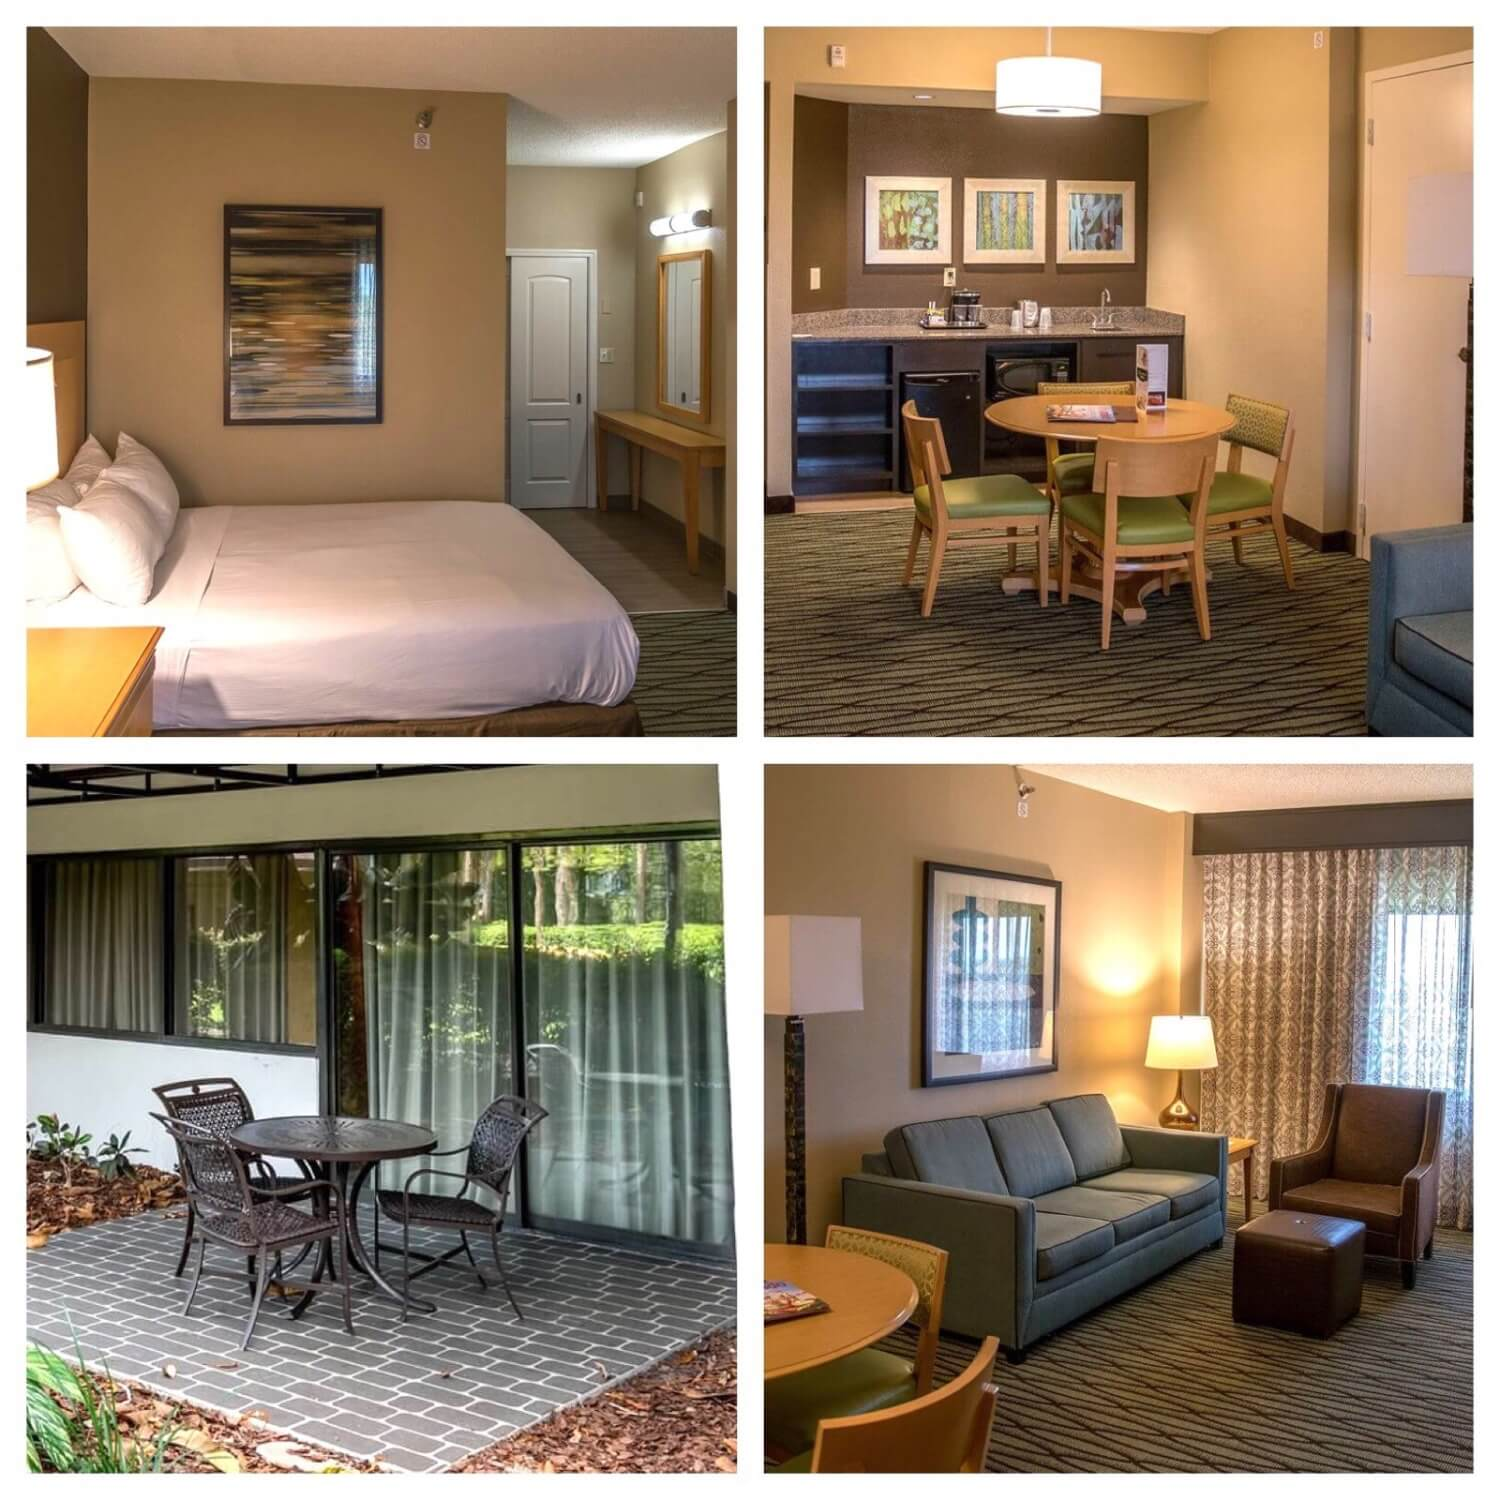 Guest rooms at the DoubleTree Suites by Hilton Orlando / Disney Springs Area hotel - Walt Disney World Resort - Orlando